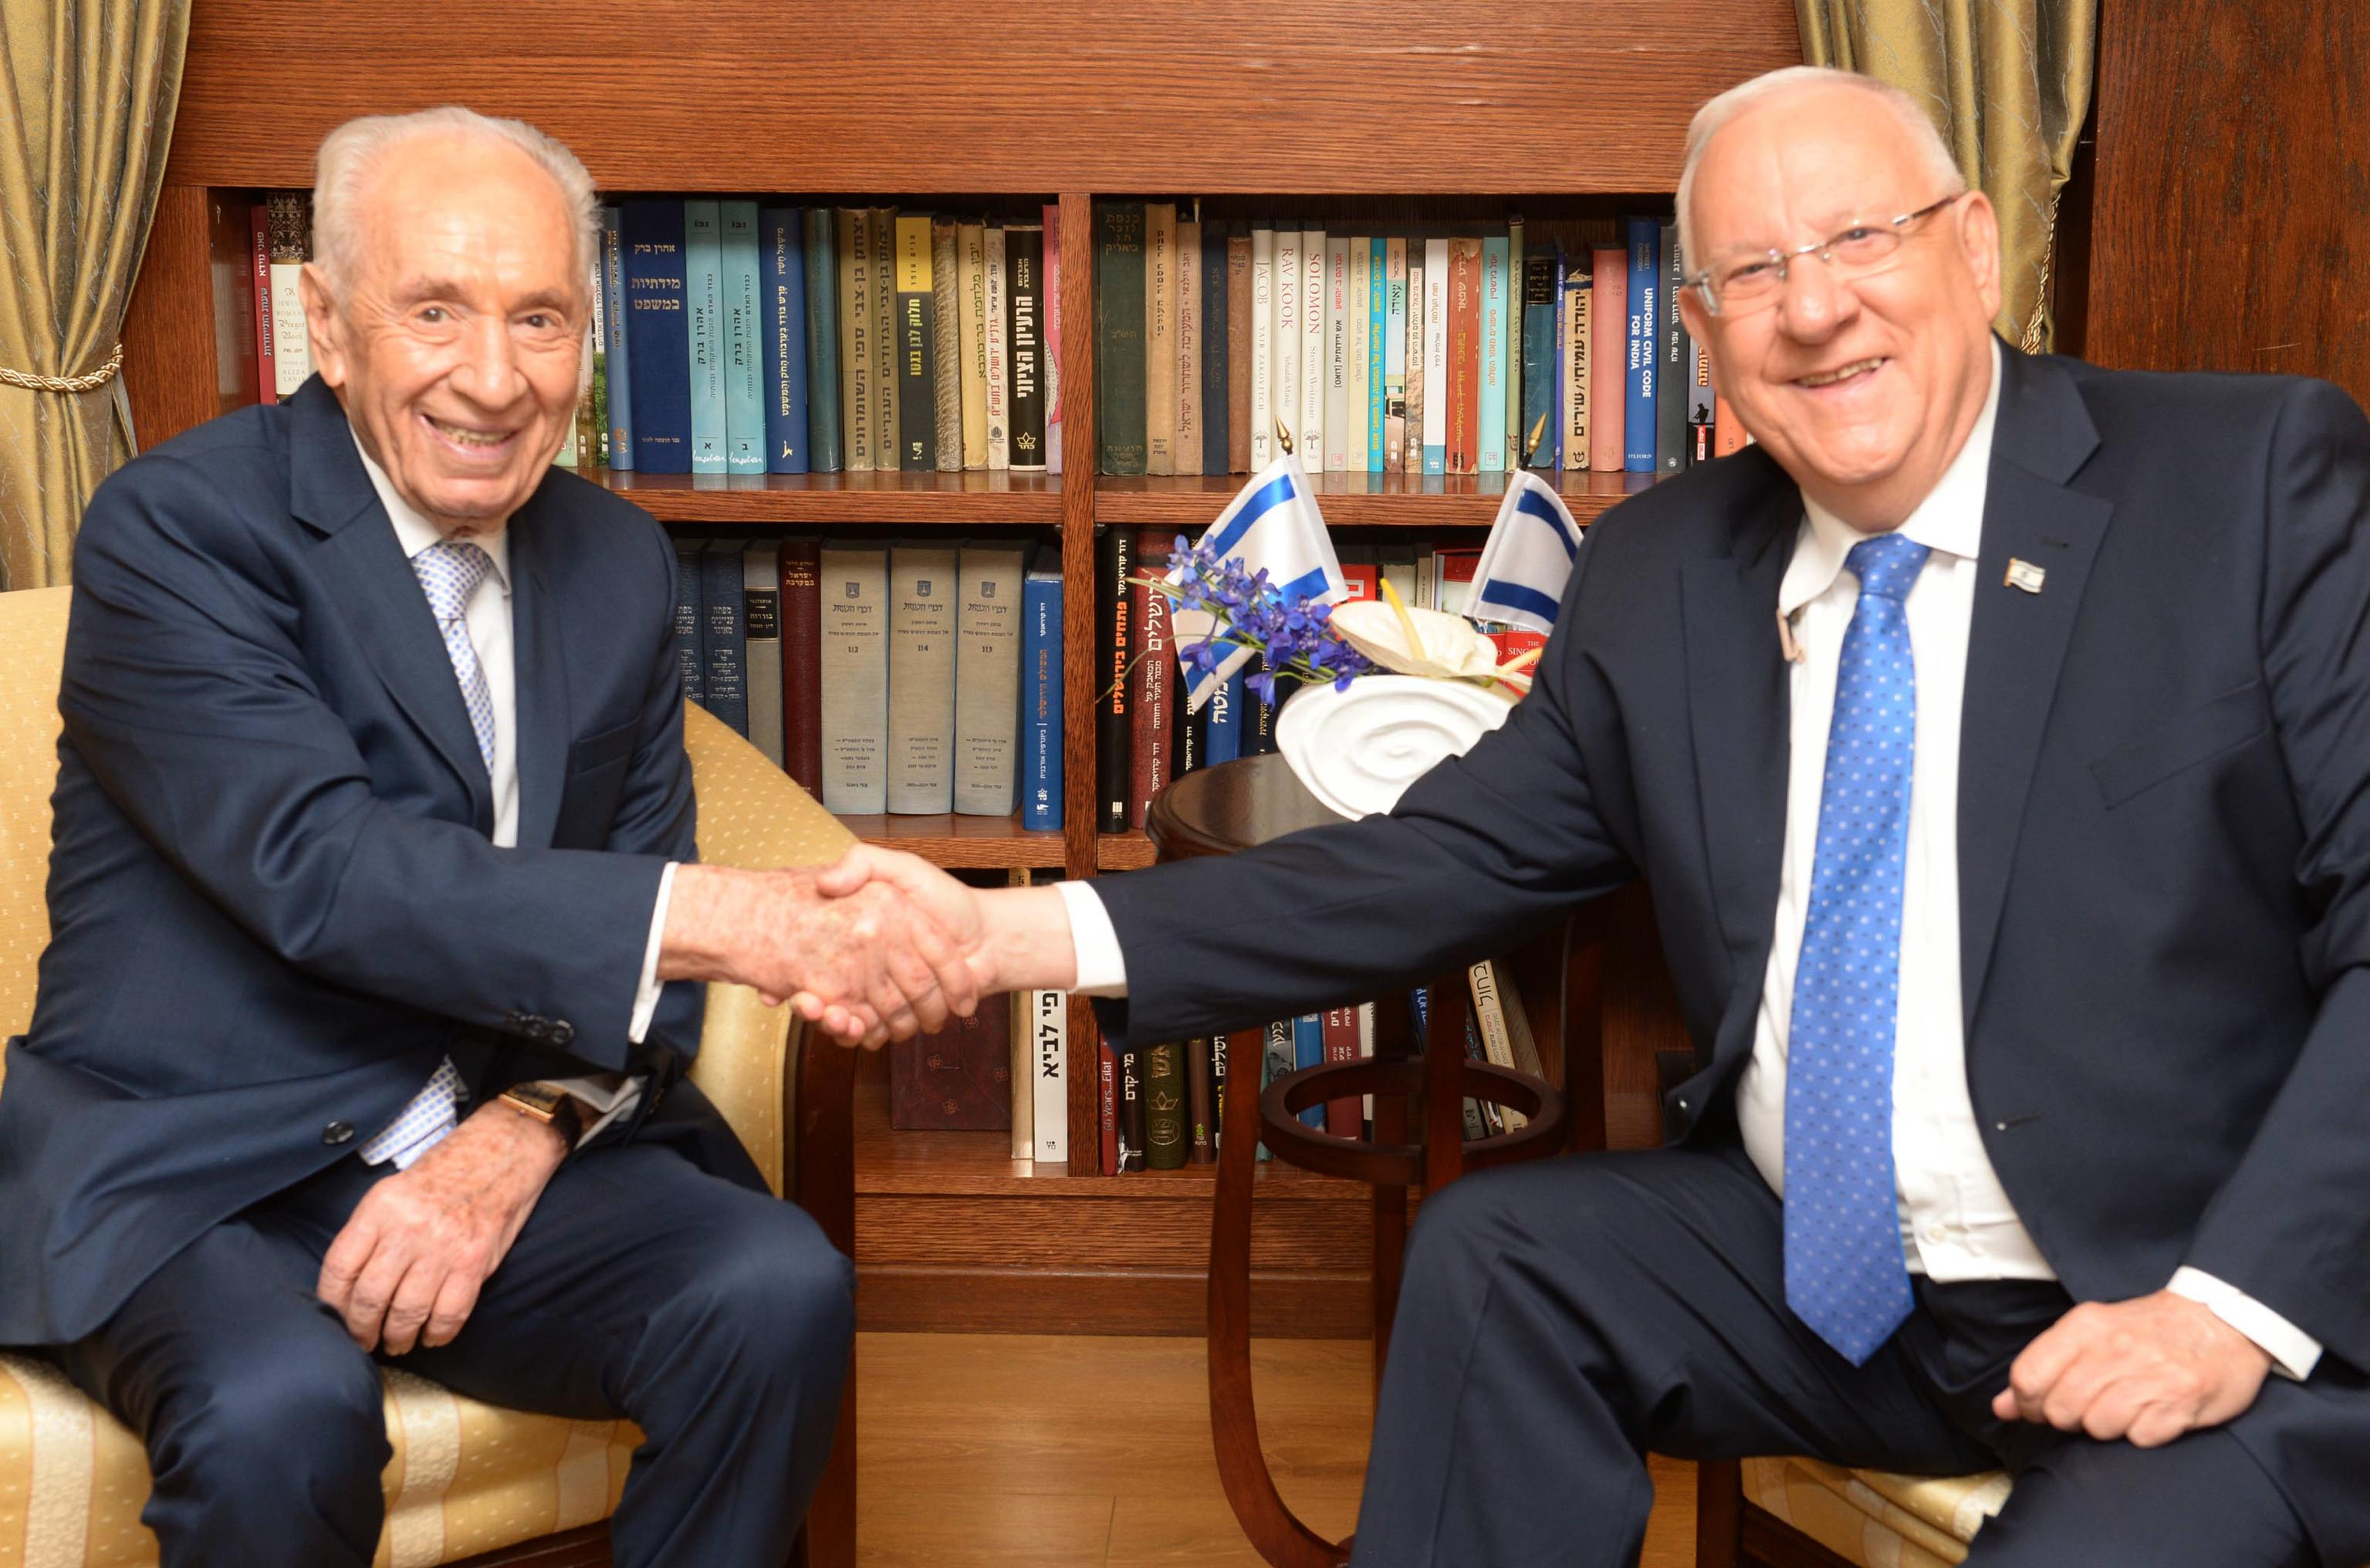 pres-rivlin-and-the-late-former-pres-peres